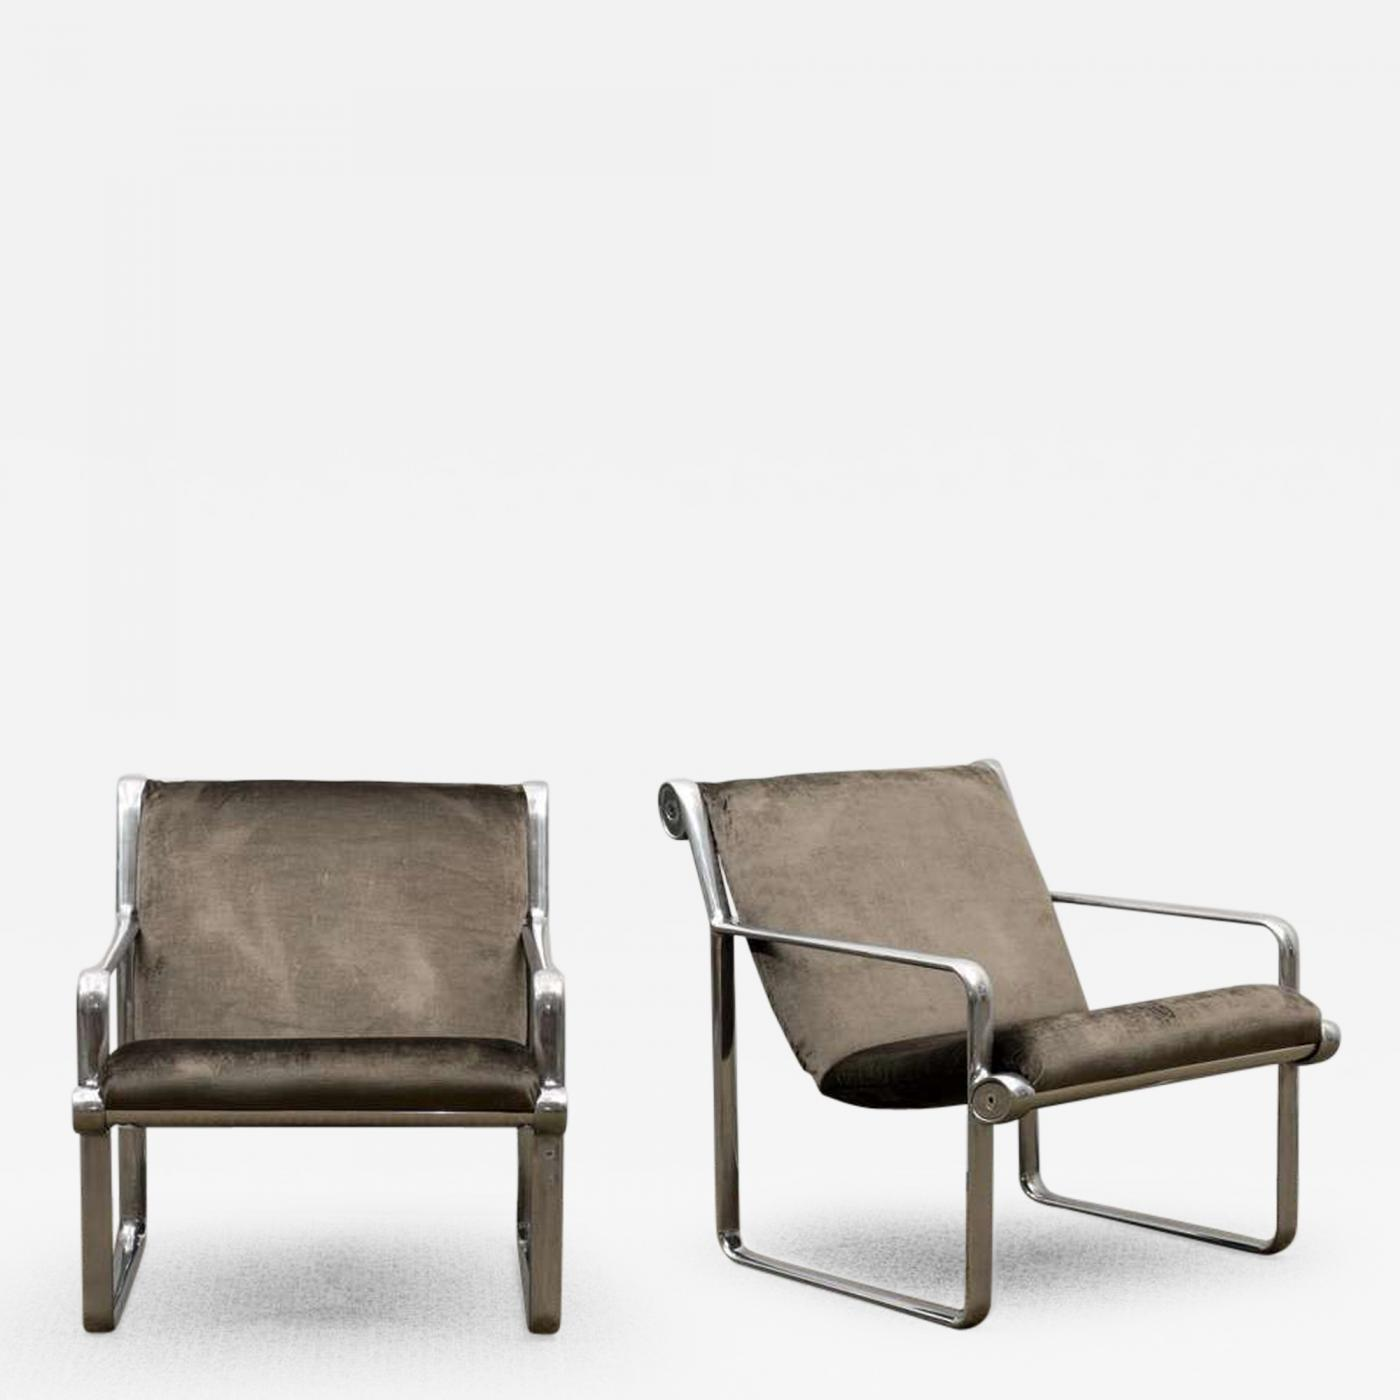 Bruce Hannah Rare Pair of Aluminum Lounge Club Chairs by Hannah